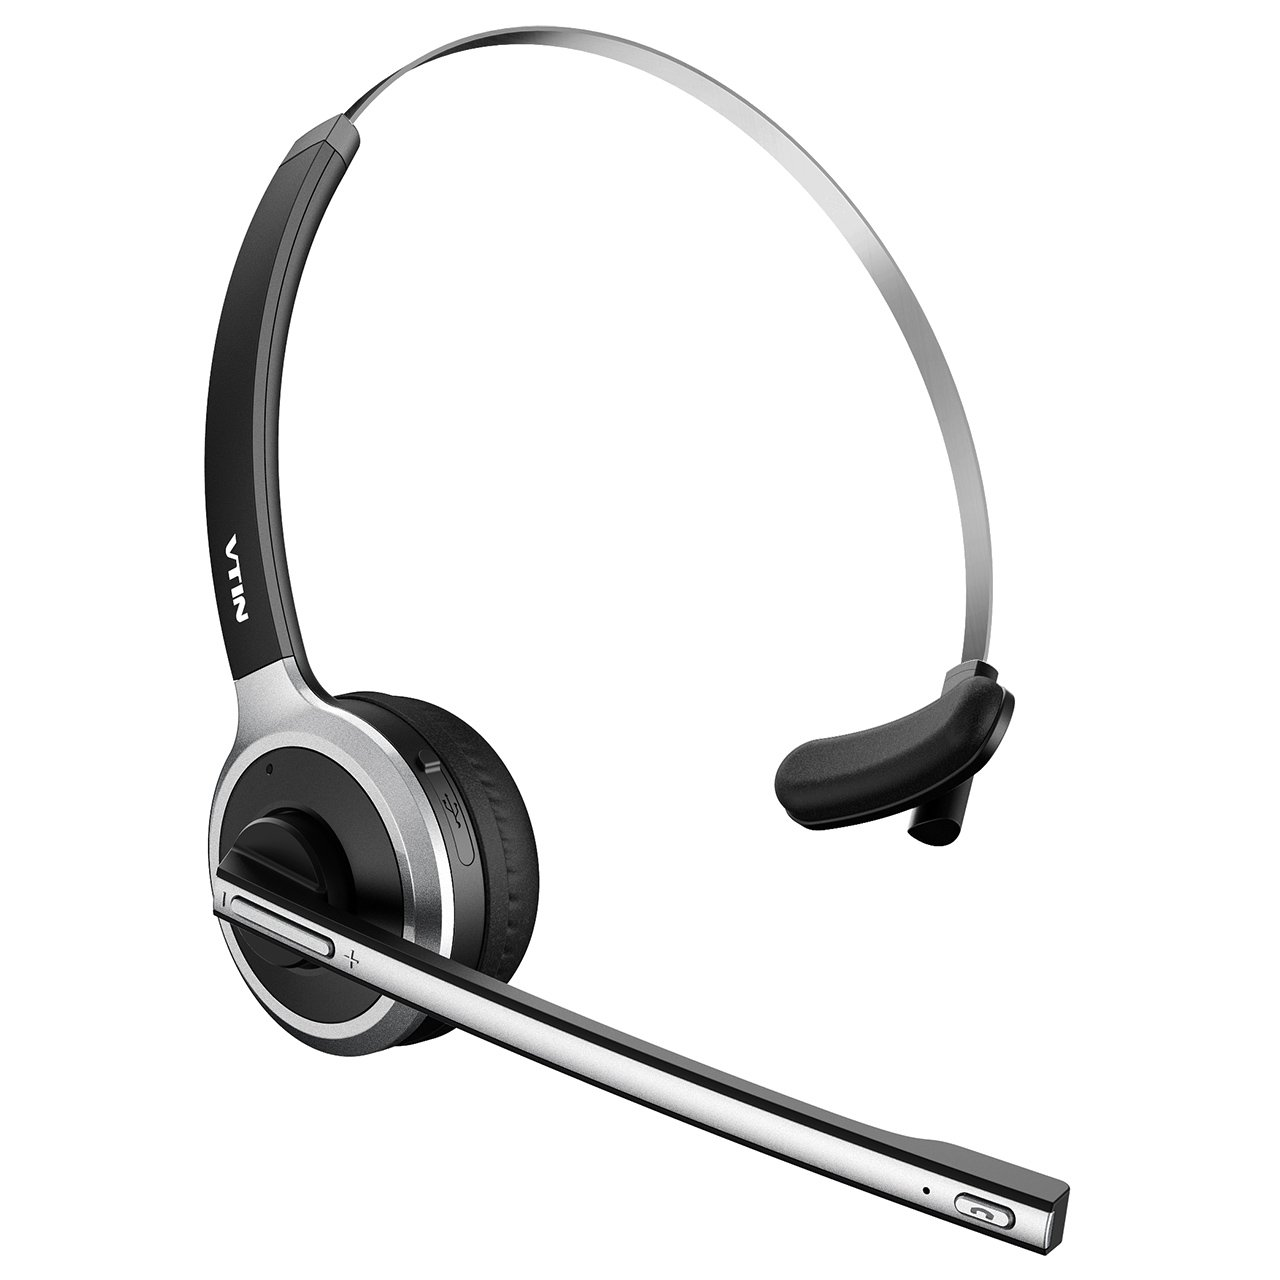 Vtin Bluetooth Headset with Microphone, Wireless Headset Computer Headphone Lightweight and Hands-Free with Mic, Stereo Over-the-Head Business Headset for Skype, Call Center, PC, Phone, Mac